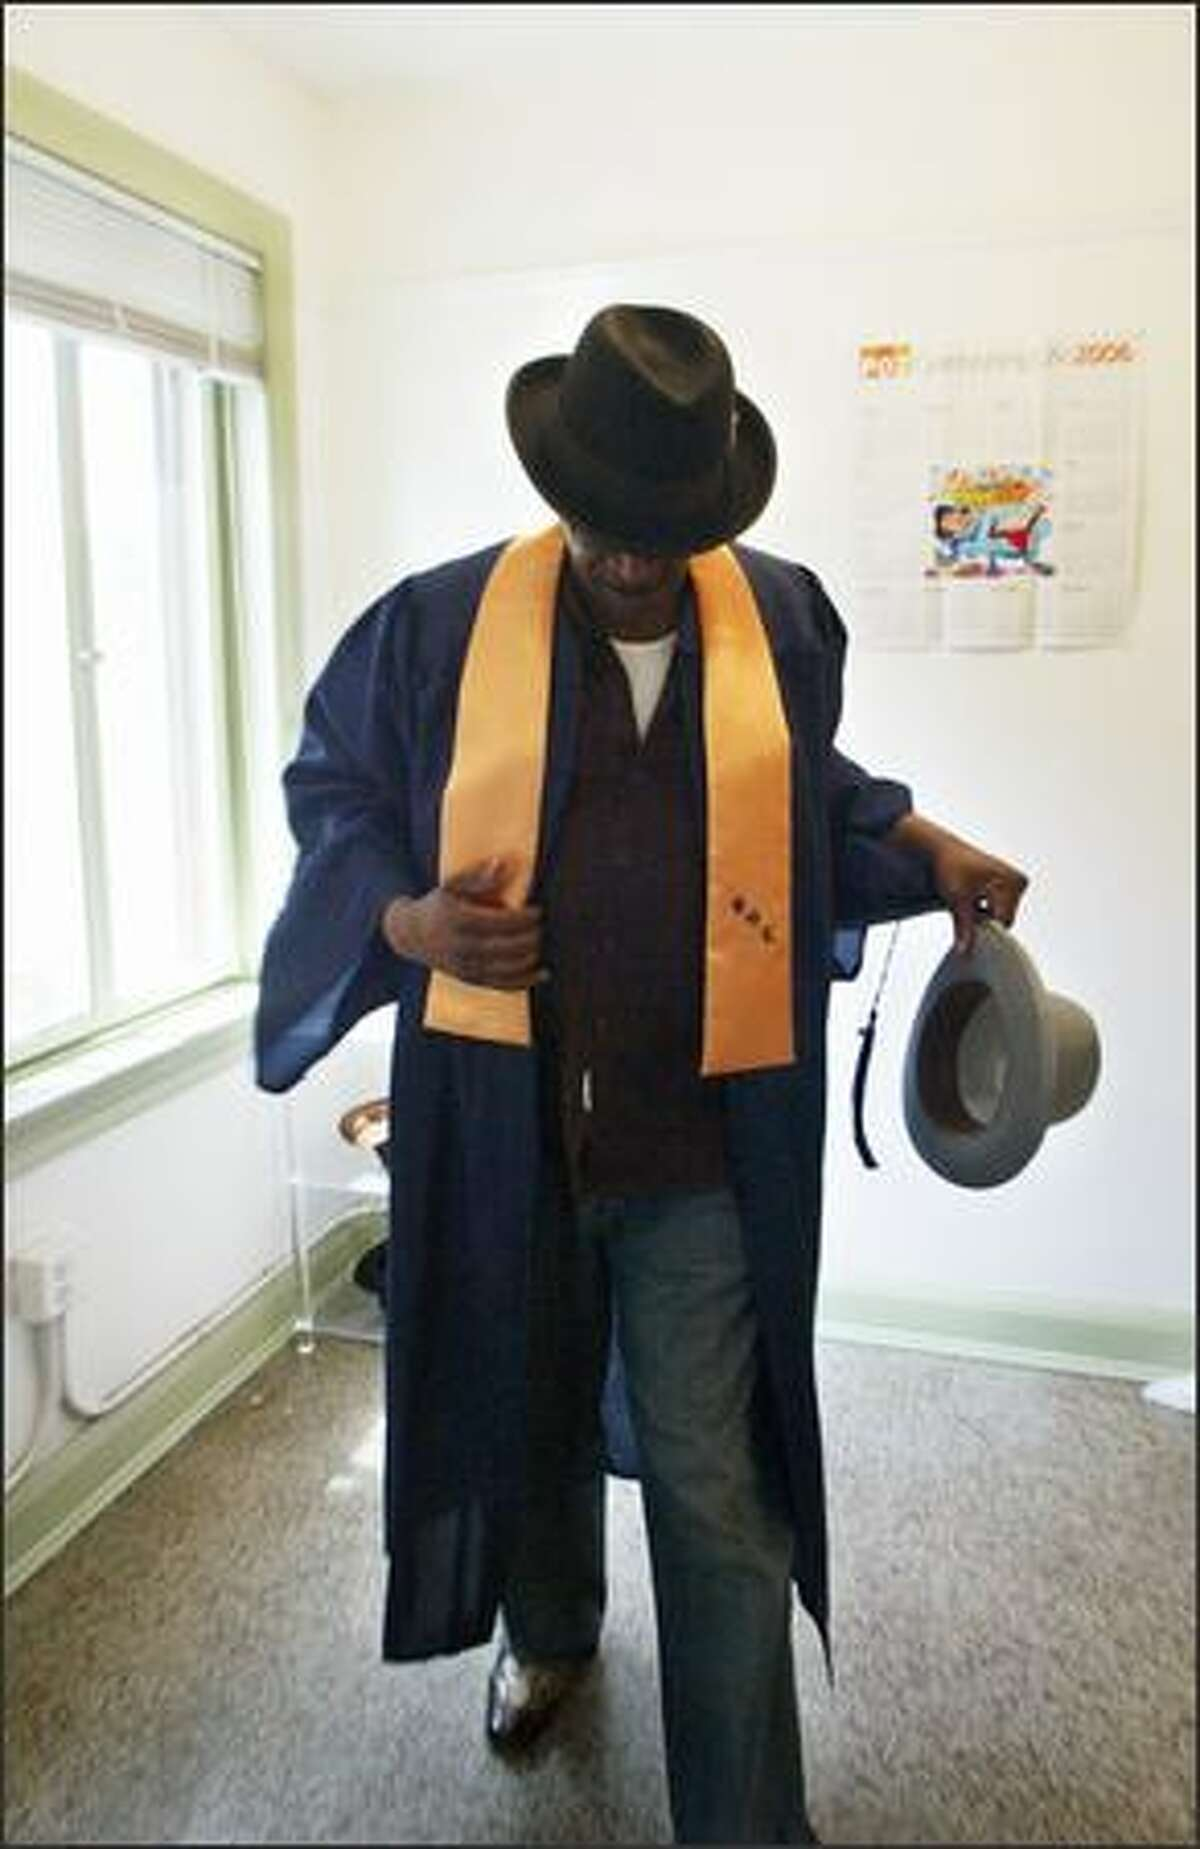 """""""I'm just a major poster child for change,"""" says Alfred White as he dons his both his graduation gown and a deceased friend's hats, which he wears in memory of the friend who died of a drug overdose. White was a pimp, drug dealer and all-around hustler. A brush with death ended all that and put him on the road to recovery."""